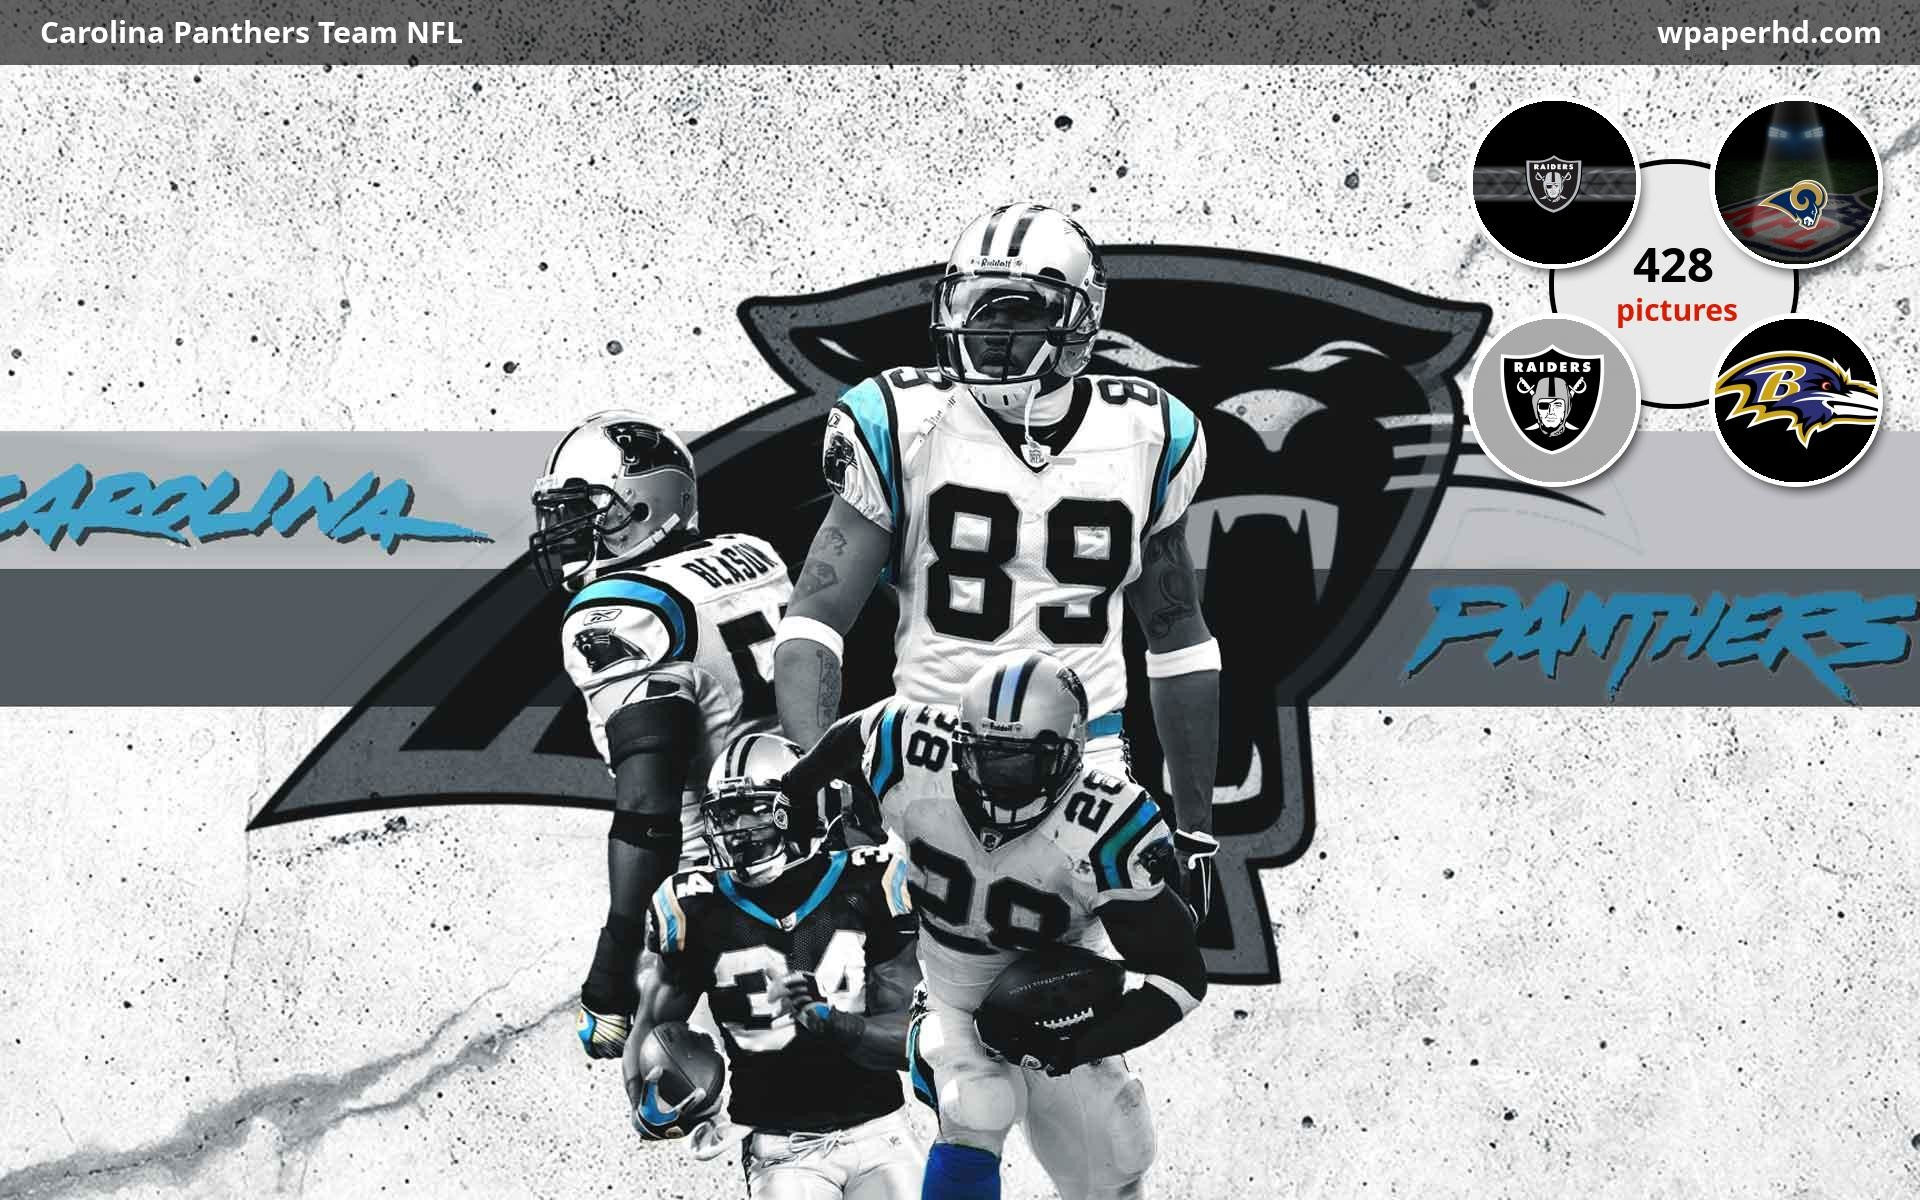 1920x1200 Description Carolina Panthers Team NFL wallpaper from Football category. You are on page with